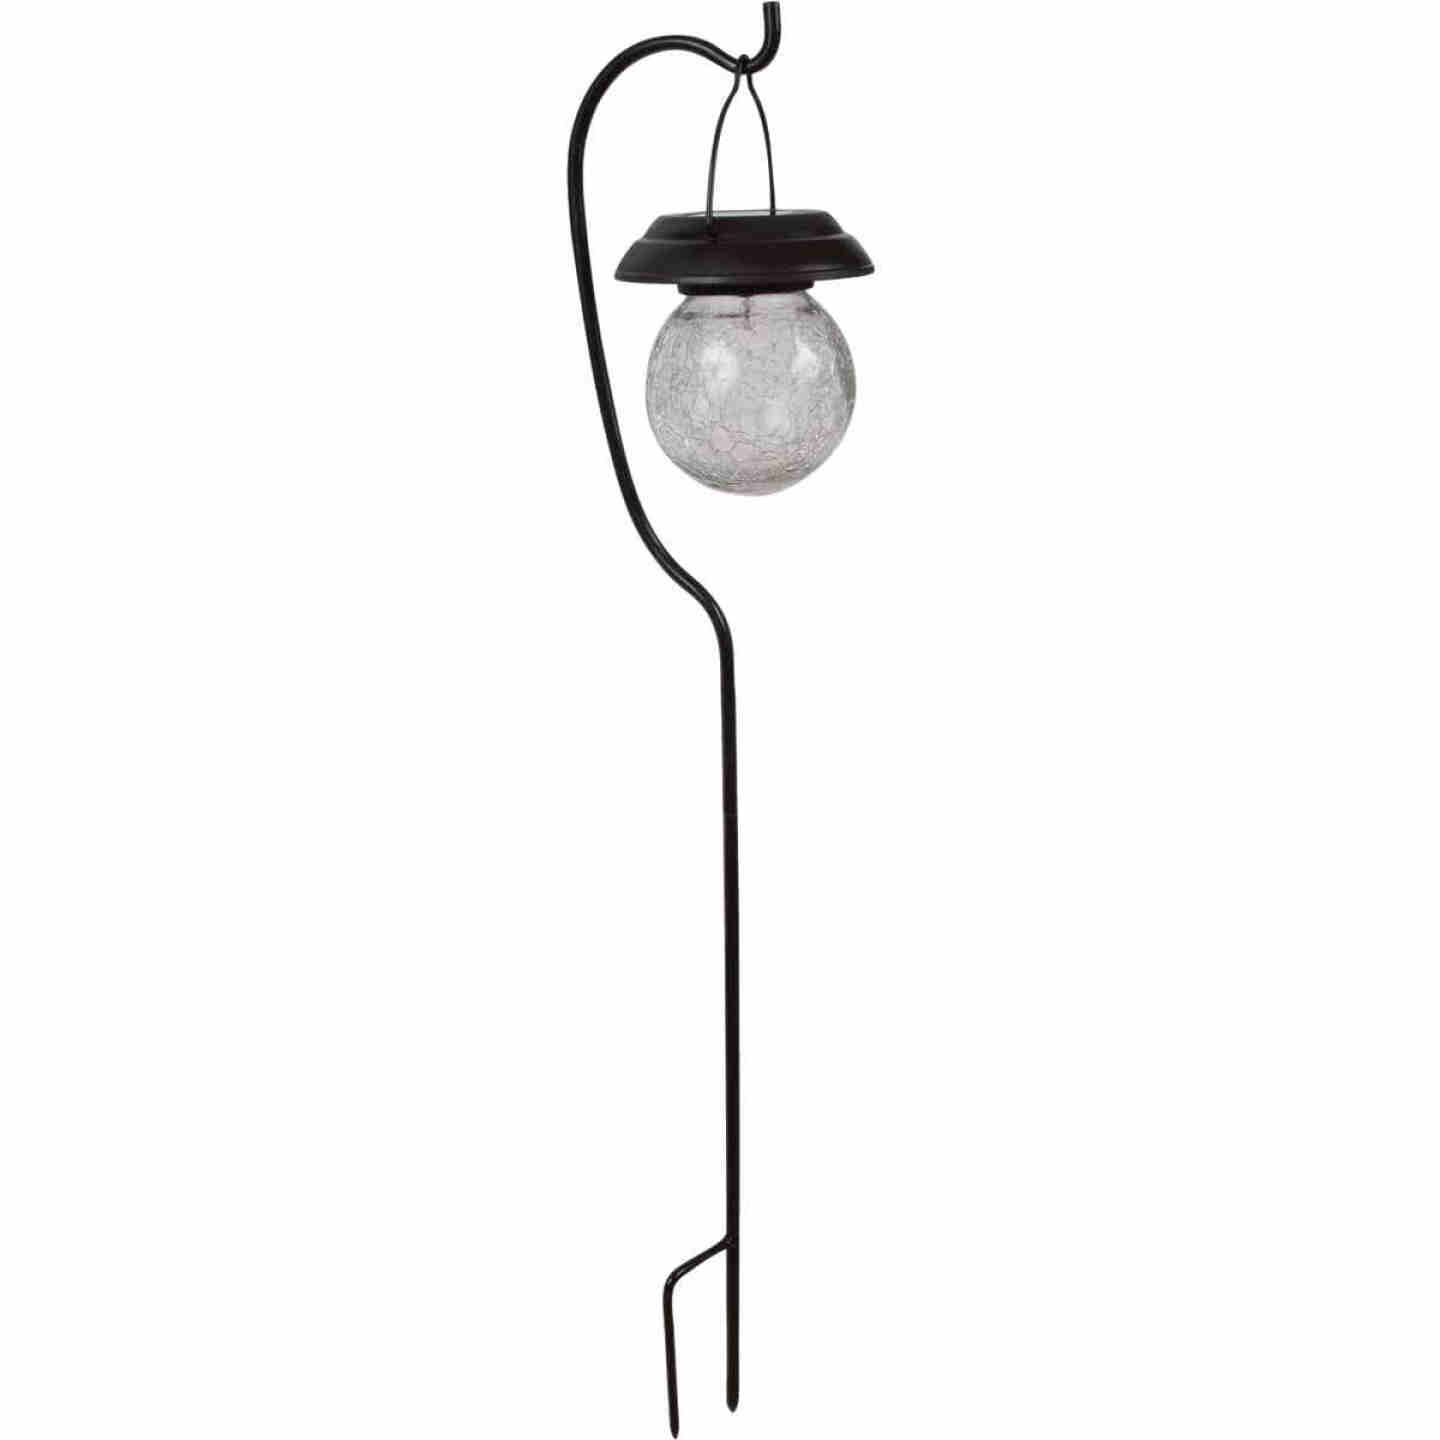 Fusion Black Stainless Steel Shepherd's Hook Hanging Crackle Ball Solar Path Light Image 1